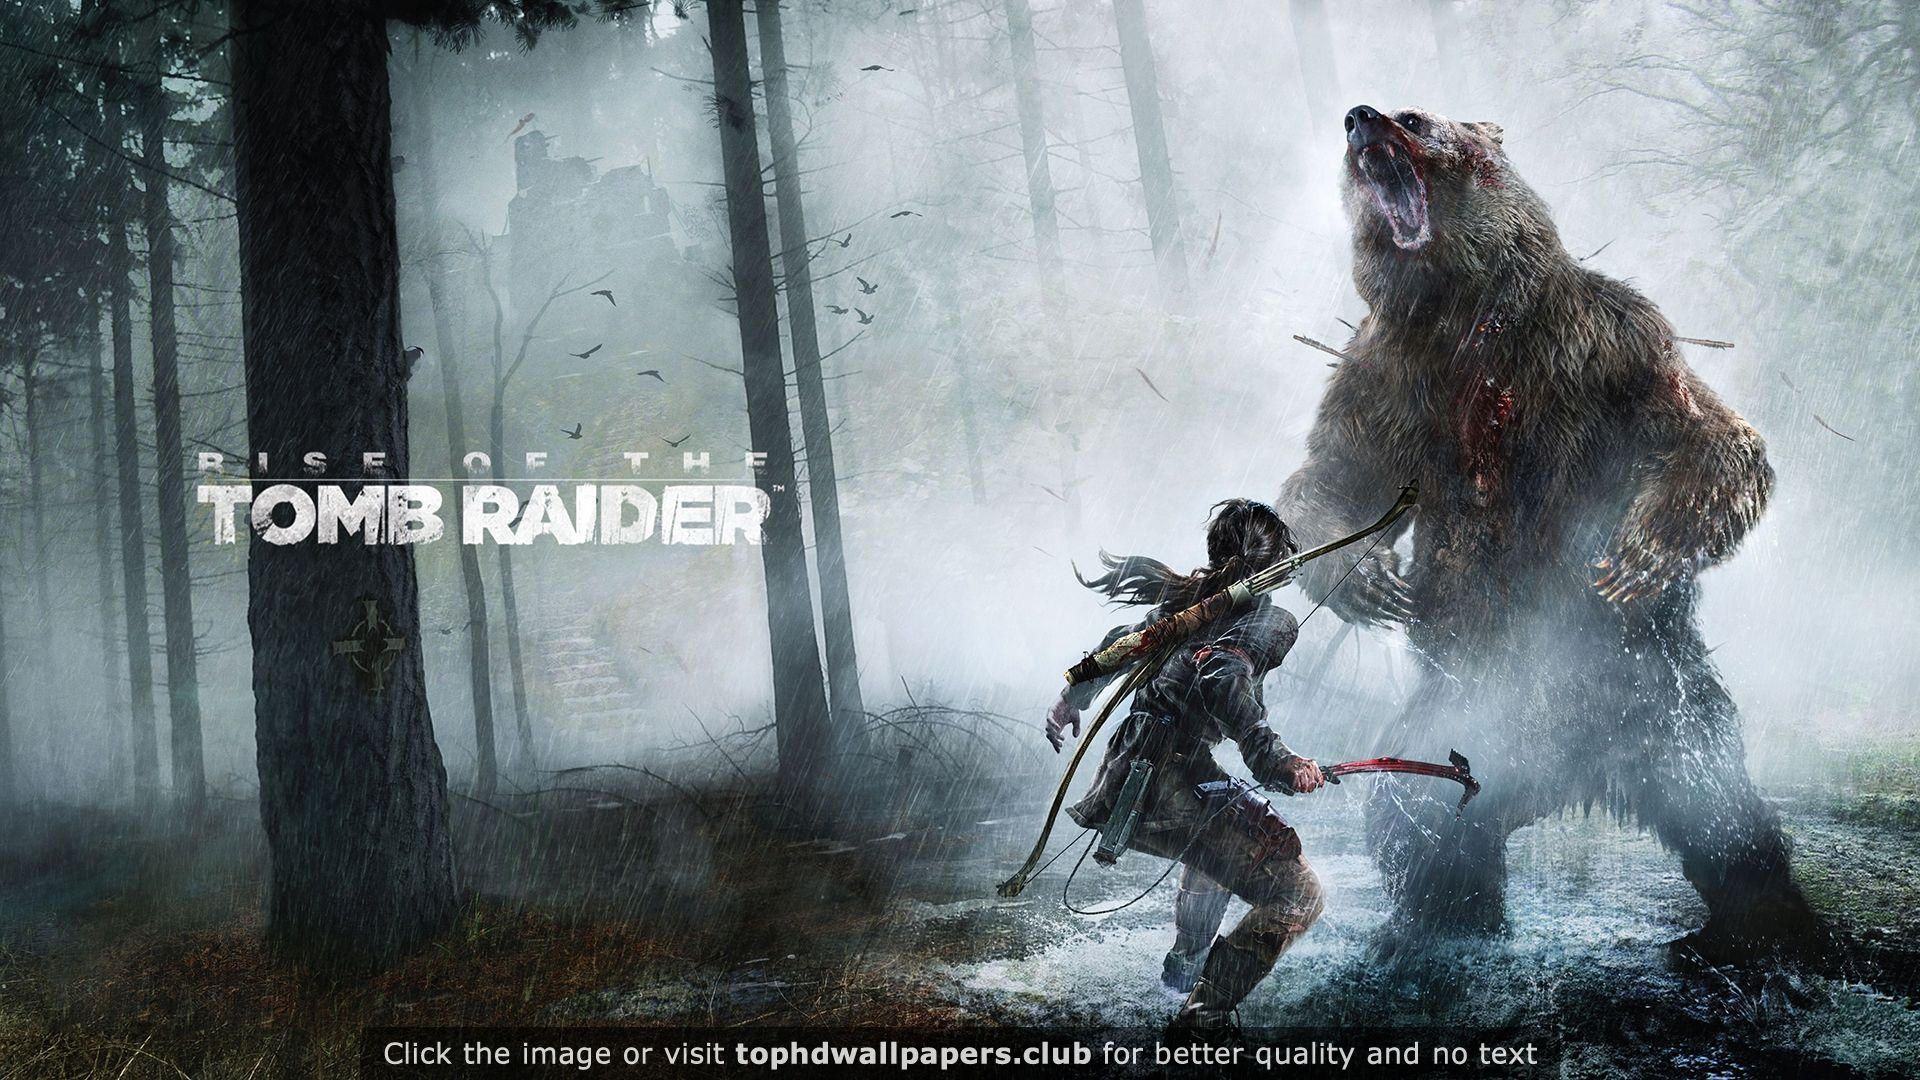 Rise Of The Tomb Raider Pc Game Hd Wallpaper Tomb Raider Wallpaper Tomb Raider Tomb Raider Video Game